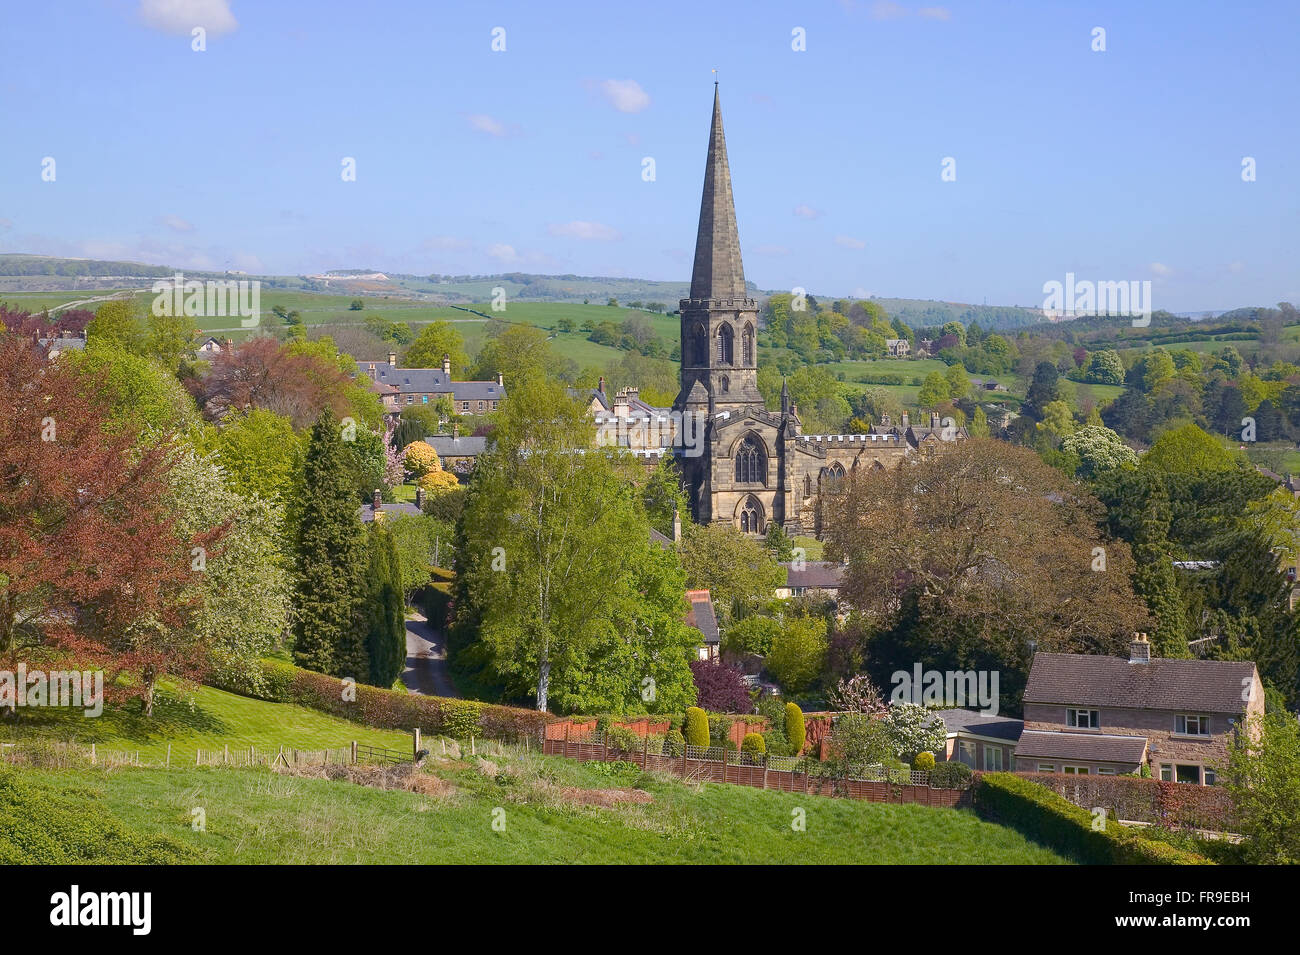 Bakewell Derbyshire Peak District - Stock Image